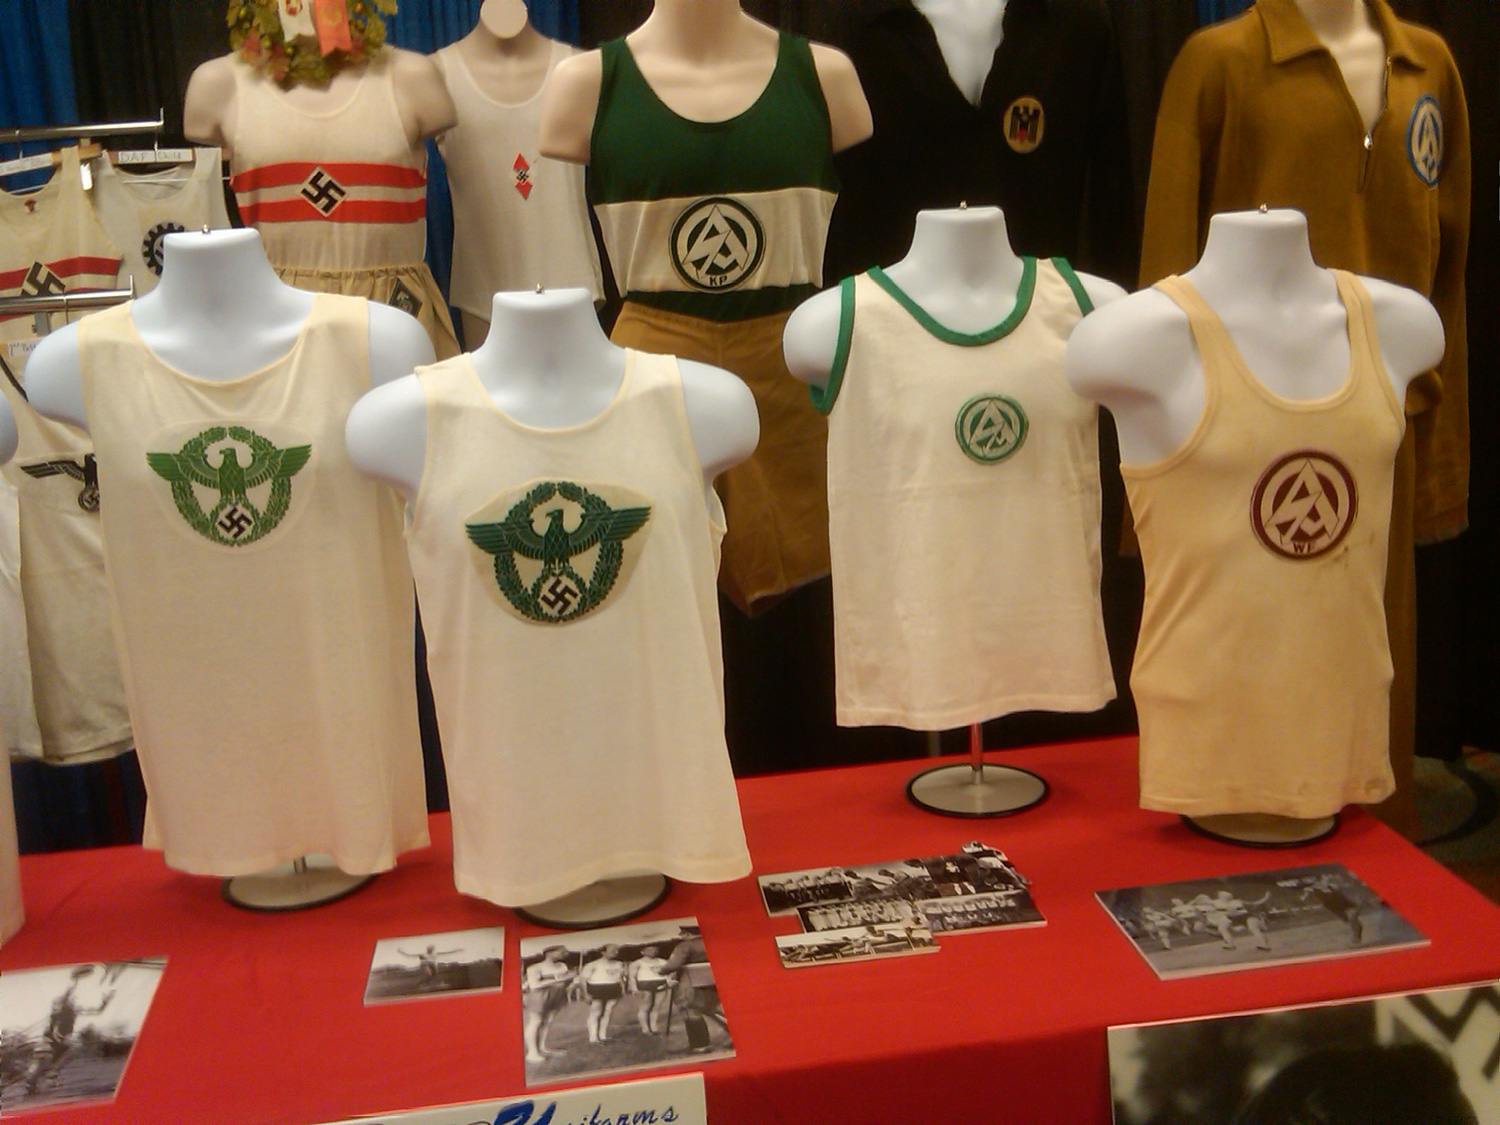 Pre-World War II German athletic shirts were part of the not-for-sale historical displays at this year's MAX Show